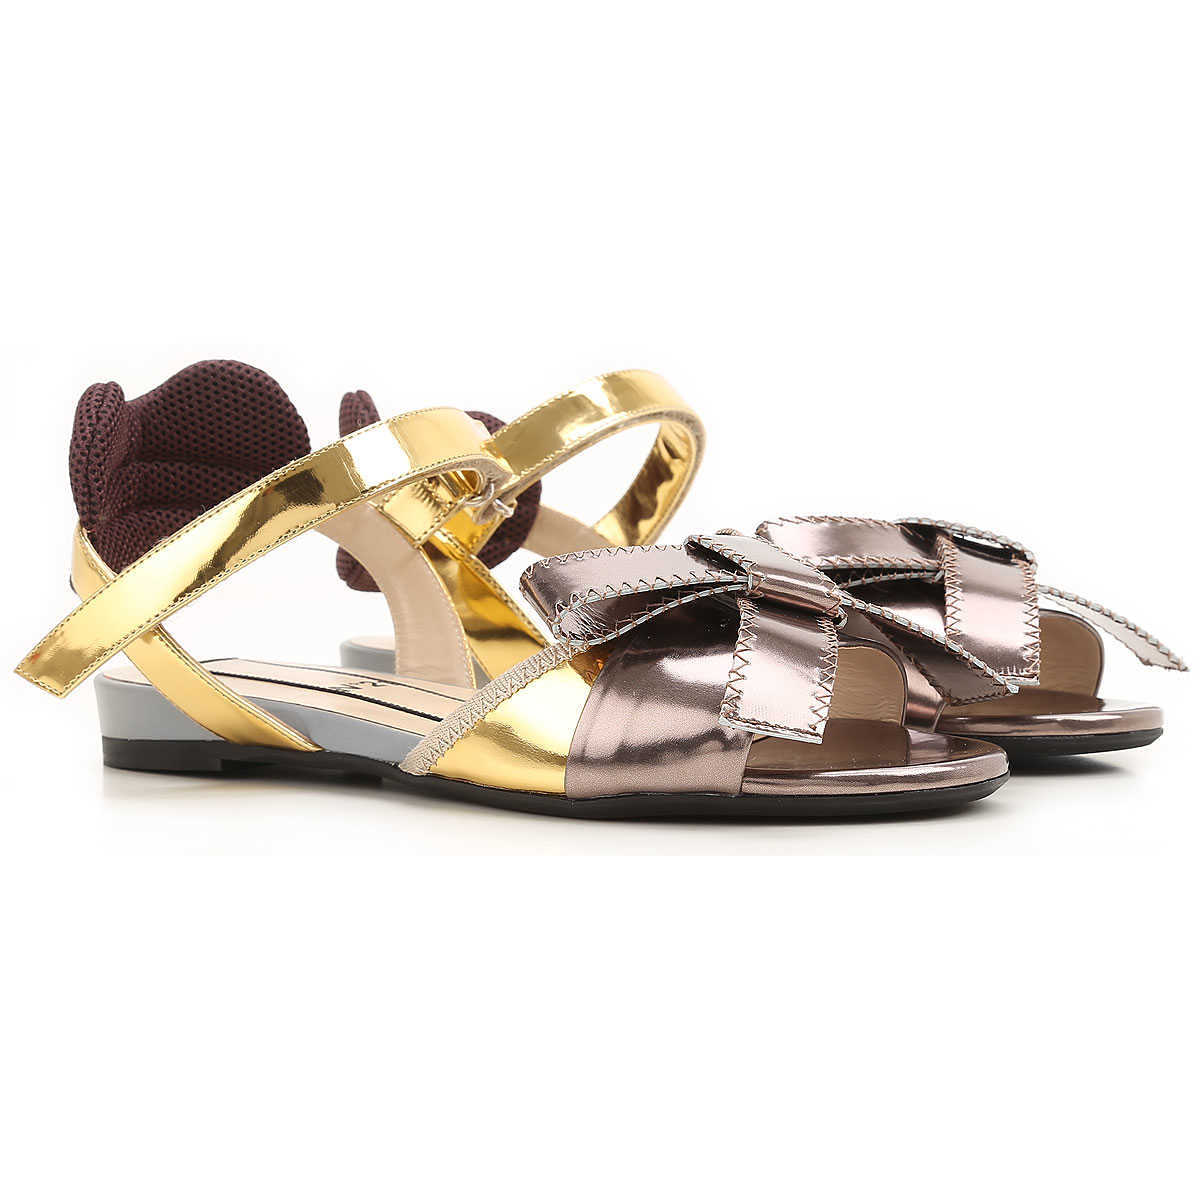 NO 21 Sandals for Women On Sale in Outlet Gold - GOOFASH